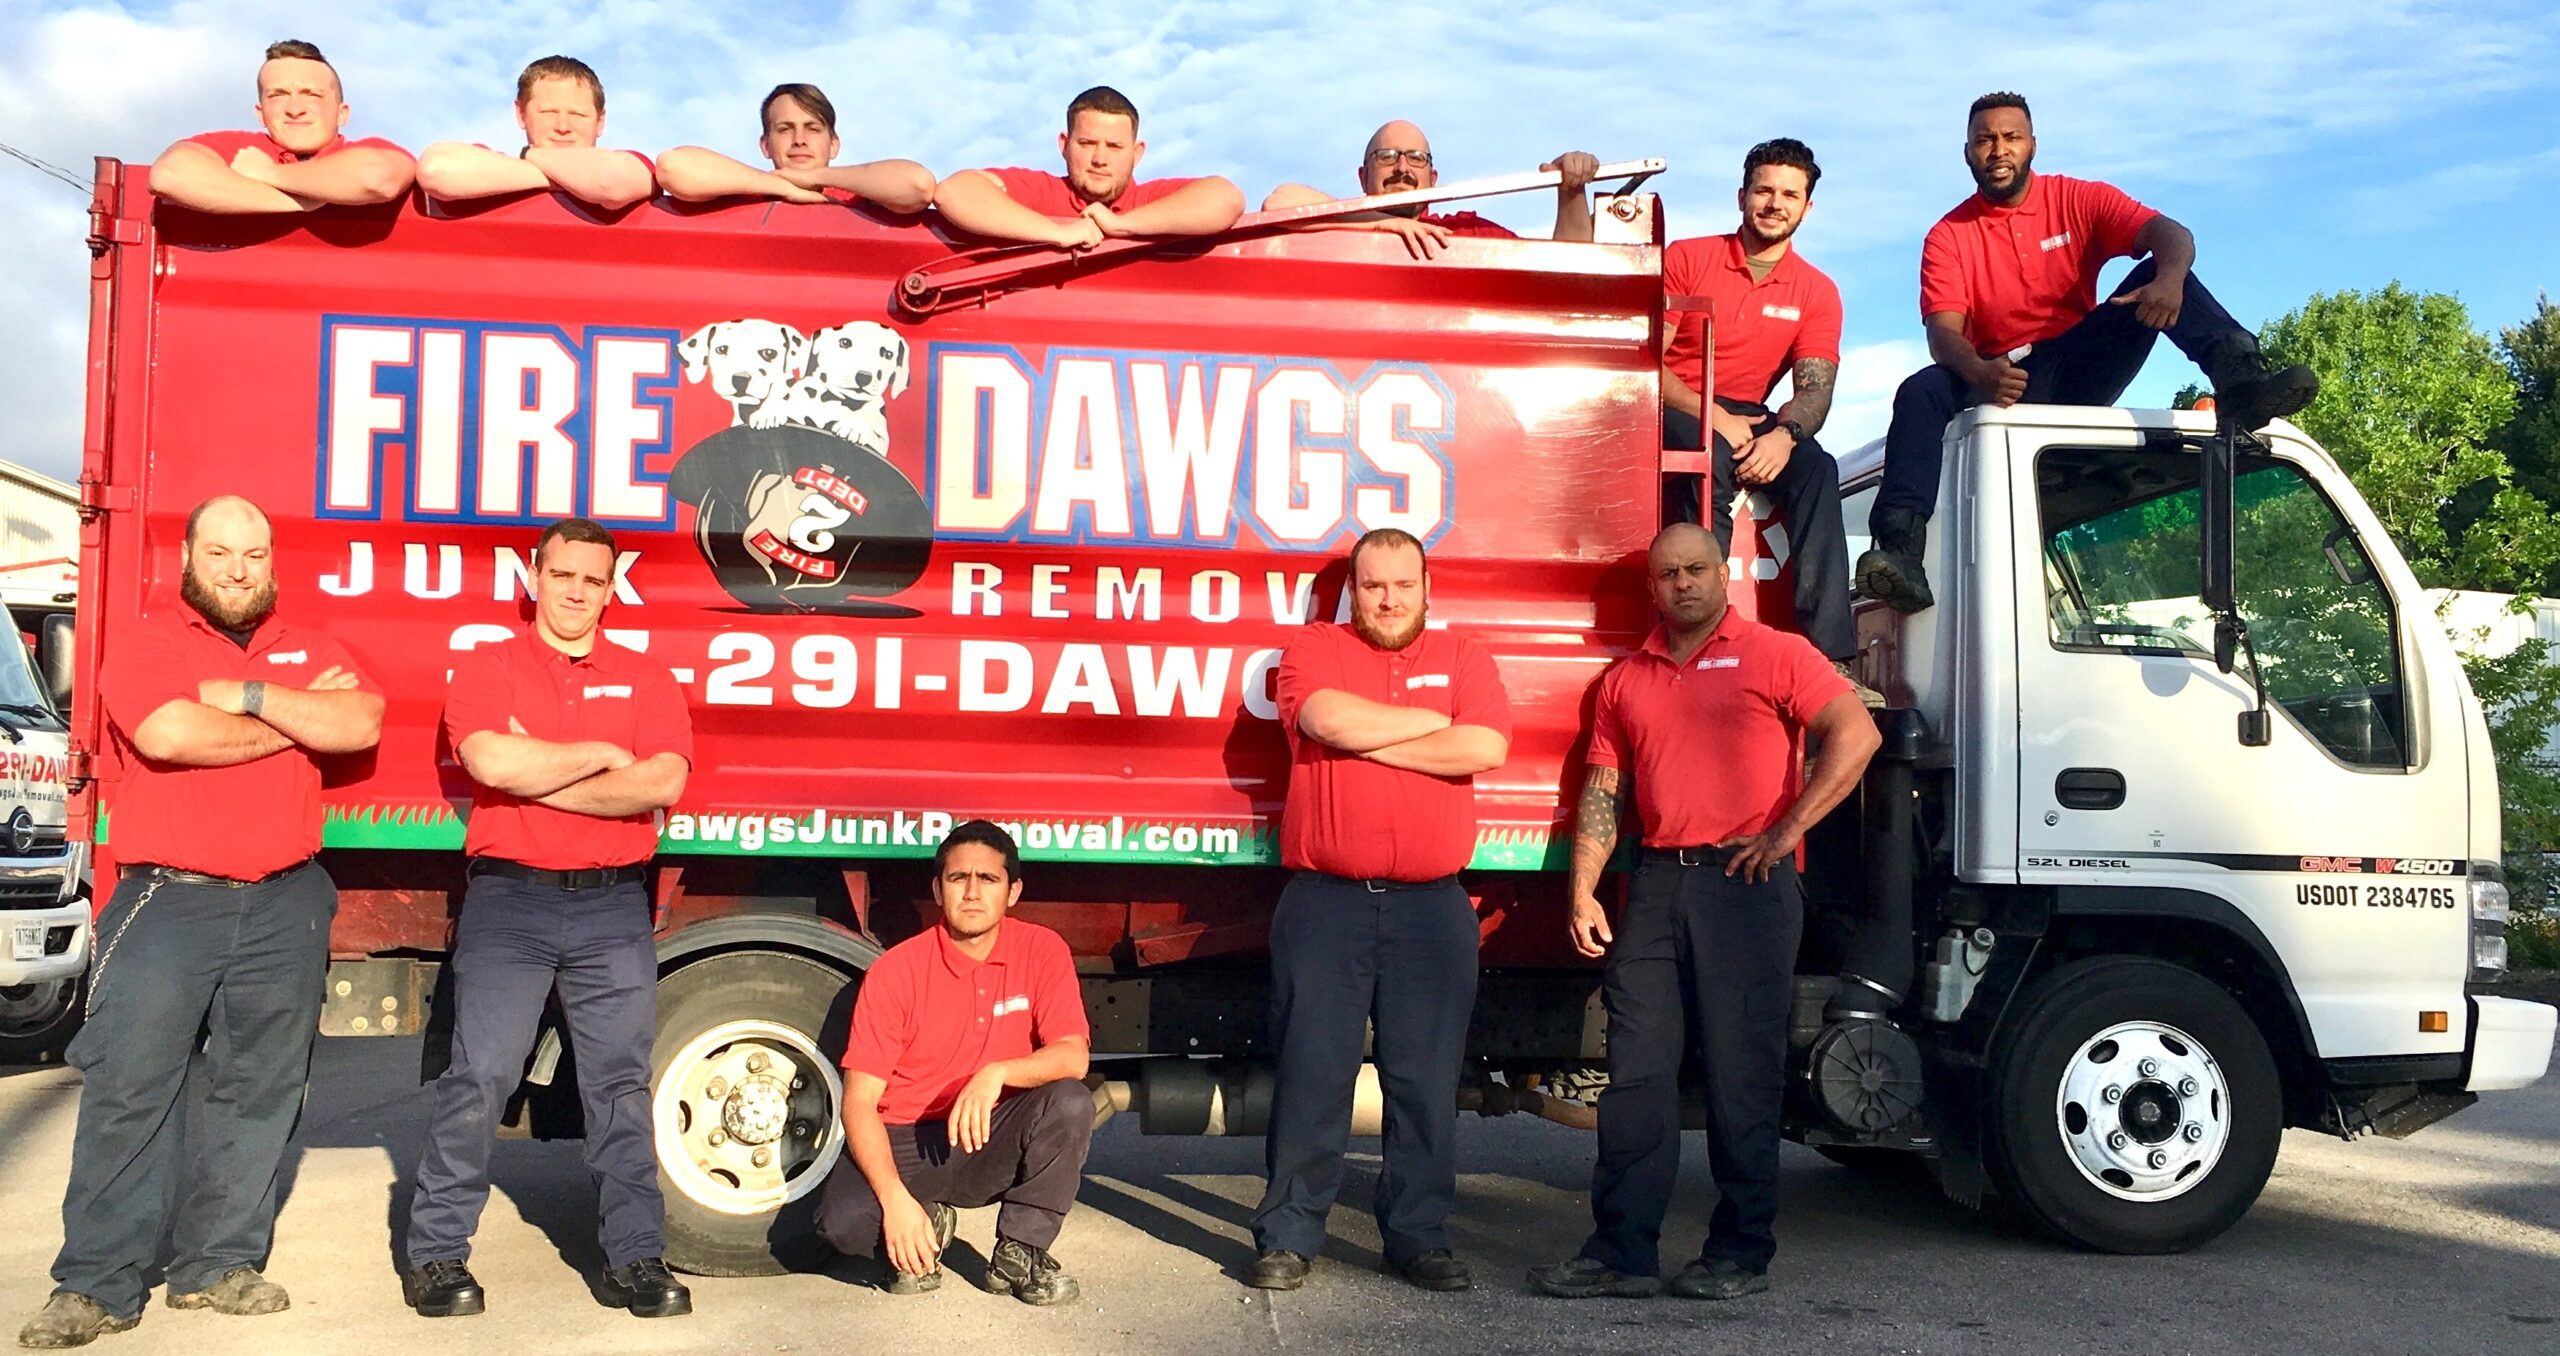 Fire Dawgs Junk Removal in Indianapolis